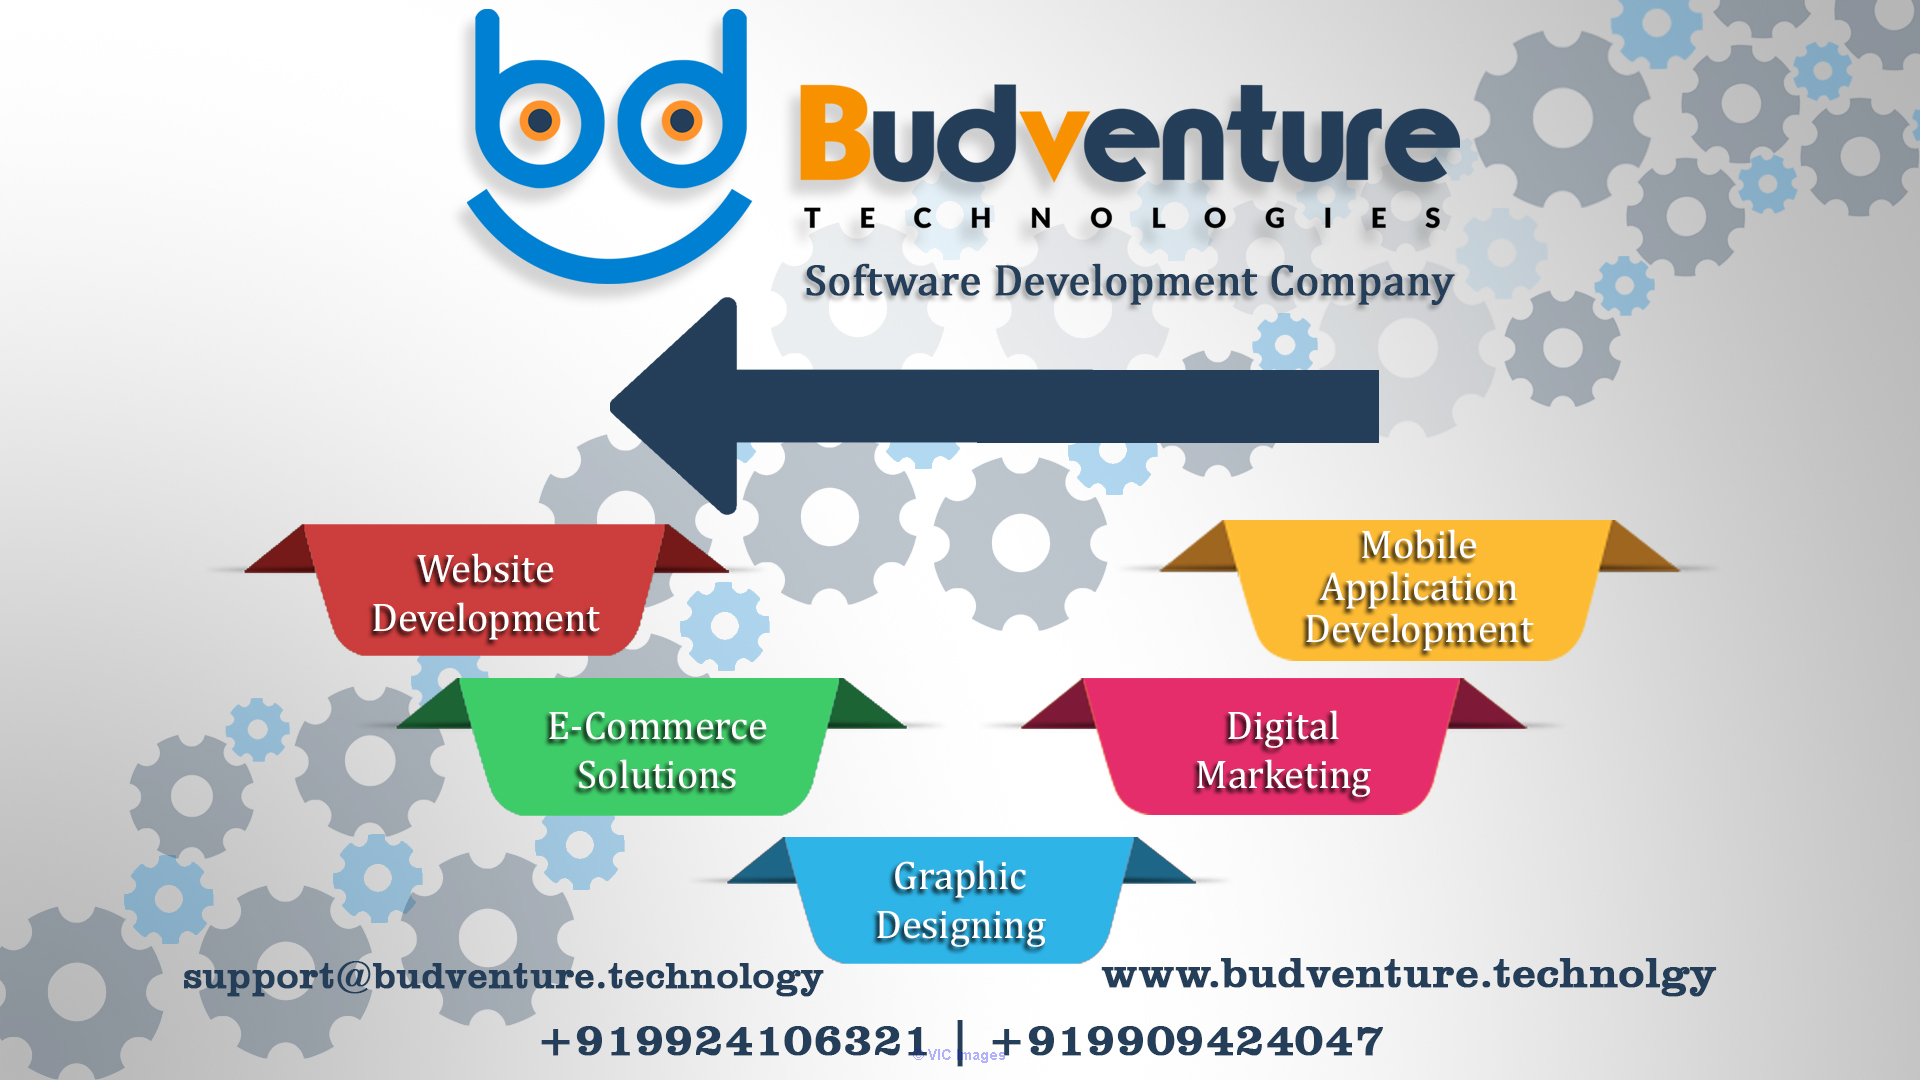 Best Web Development Company in Ahmedabad Ottawa, Ontario, Canada Classifieds